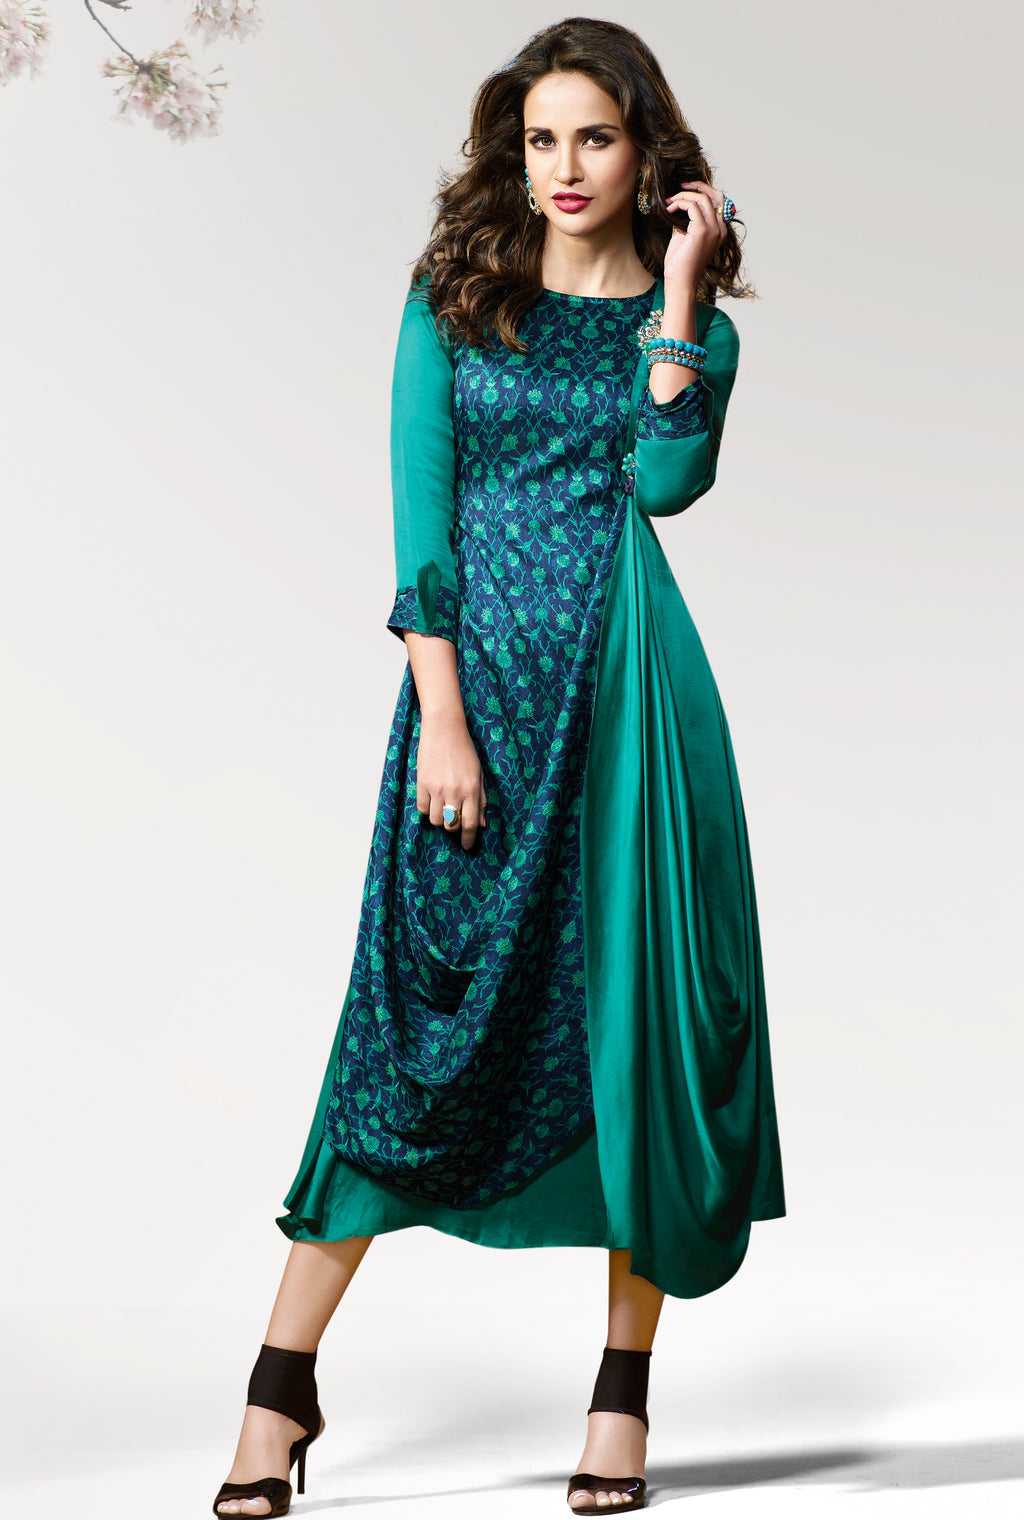 Green Color Silk & Crepe Readymade Party Wear Kurtis ( Sizes - 38,40) Vinay TumbaTwinkle Catlog SJ-10462